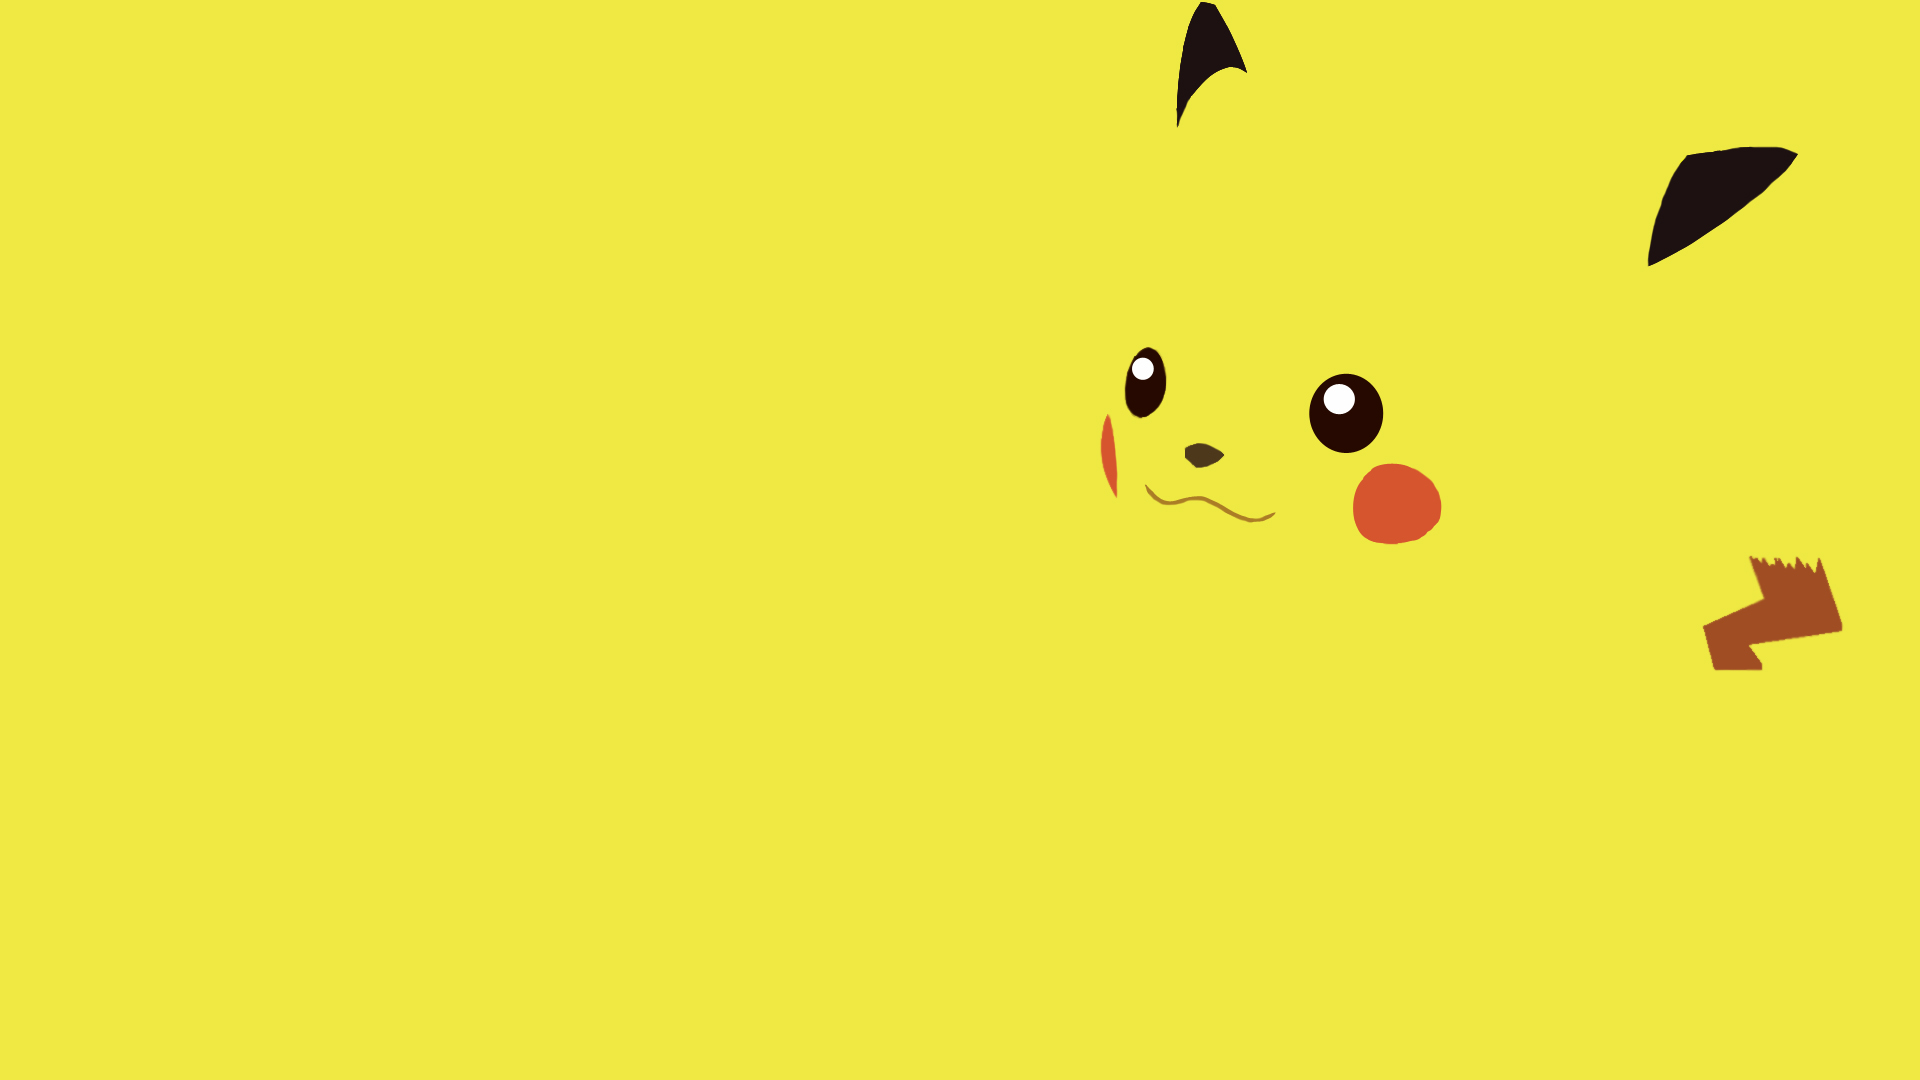 Pokemon Backgrounds 18263 1920x1080 Px Hdwallsource Com